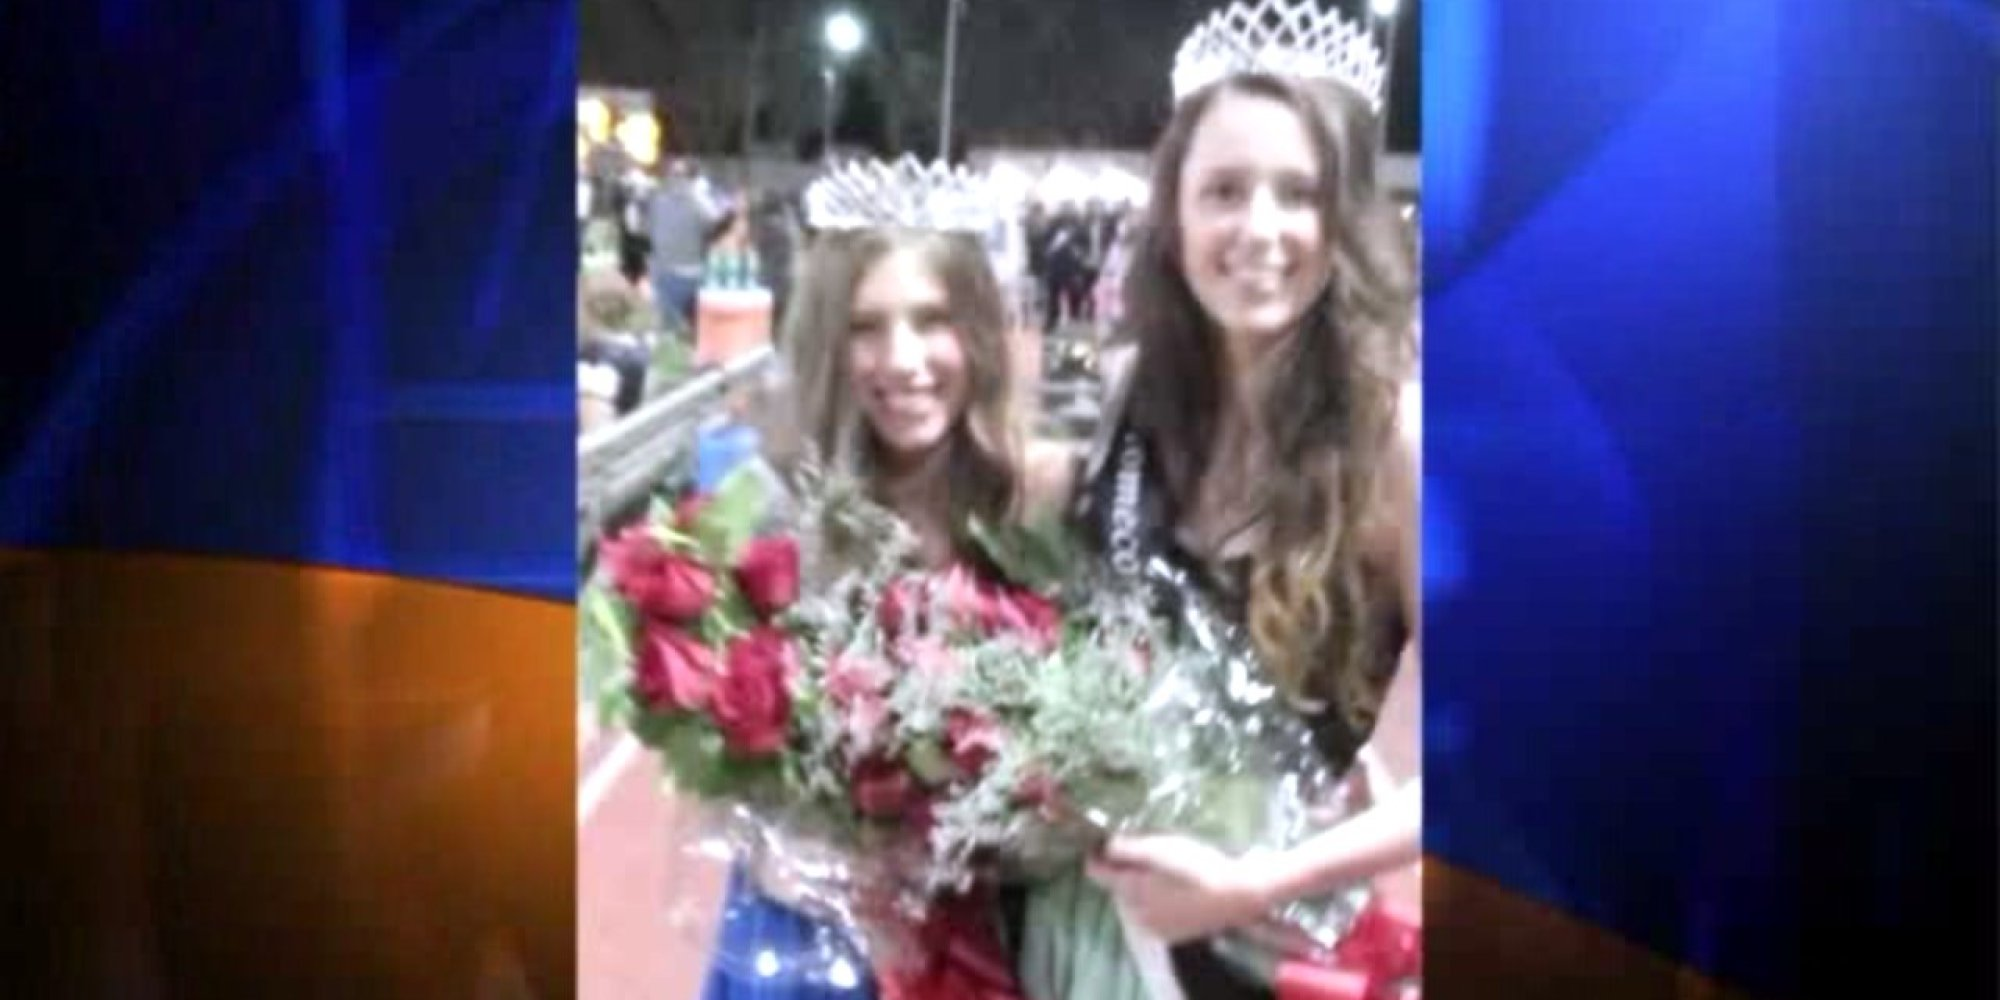 preteen lesbian Lily Cohen And Greta Melendez, California Lesbian Teen Couple, Voted  Homecoming Queens | The Huffington Post